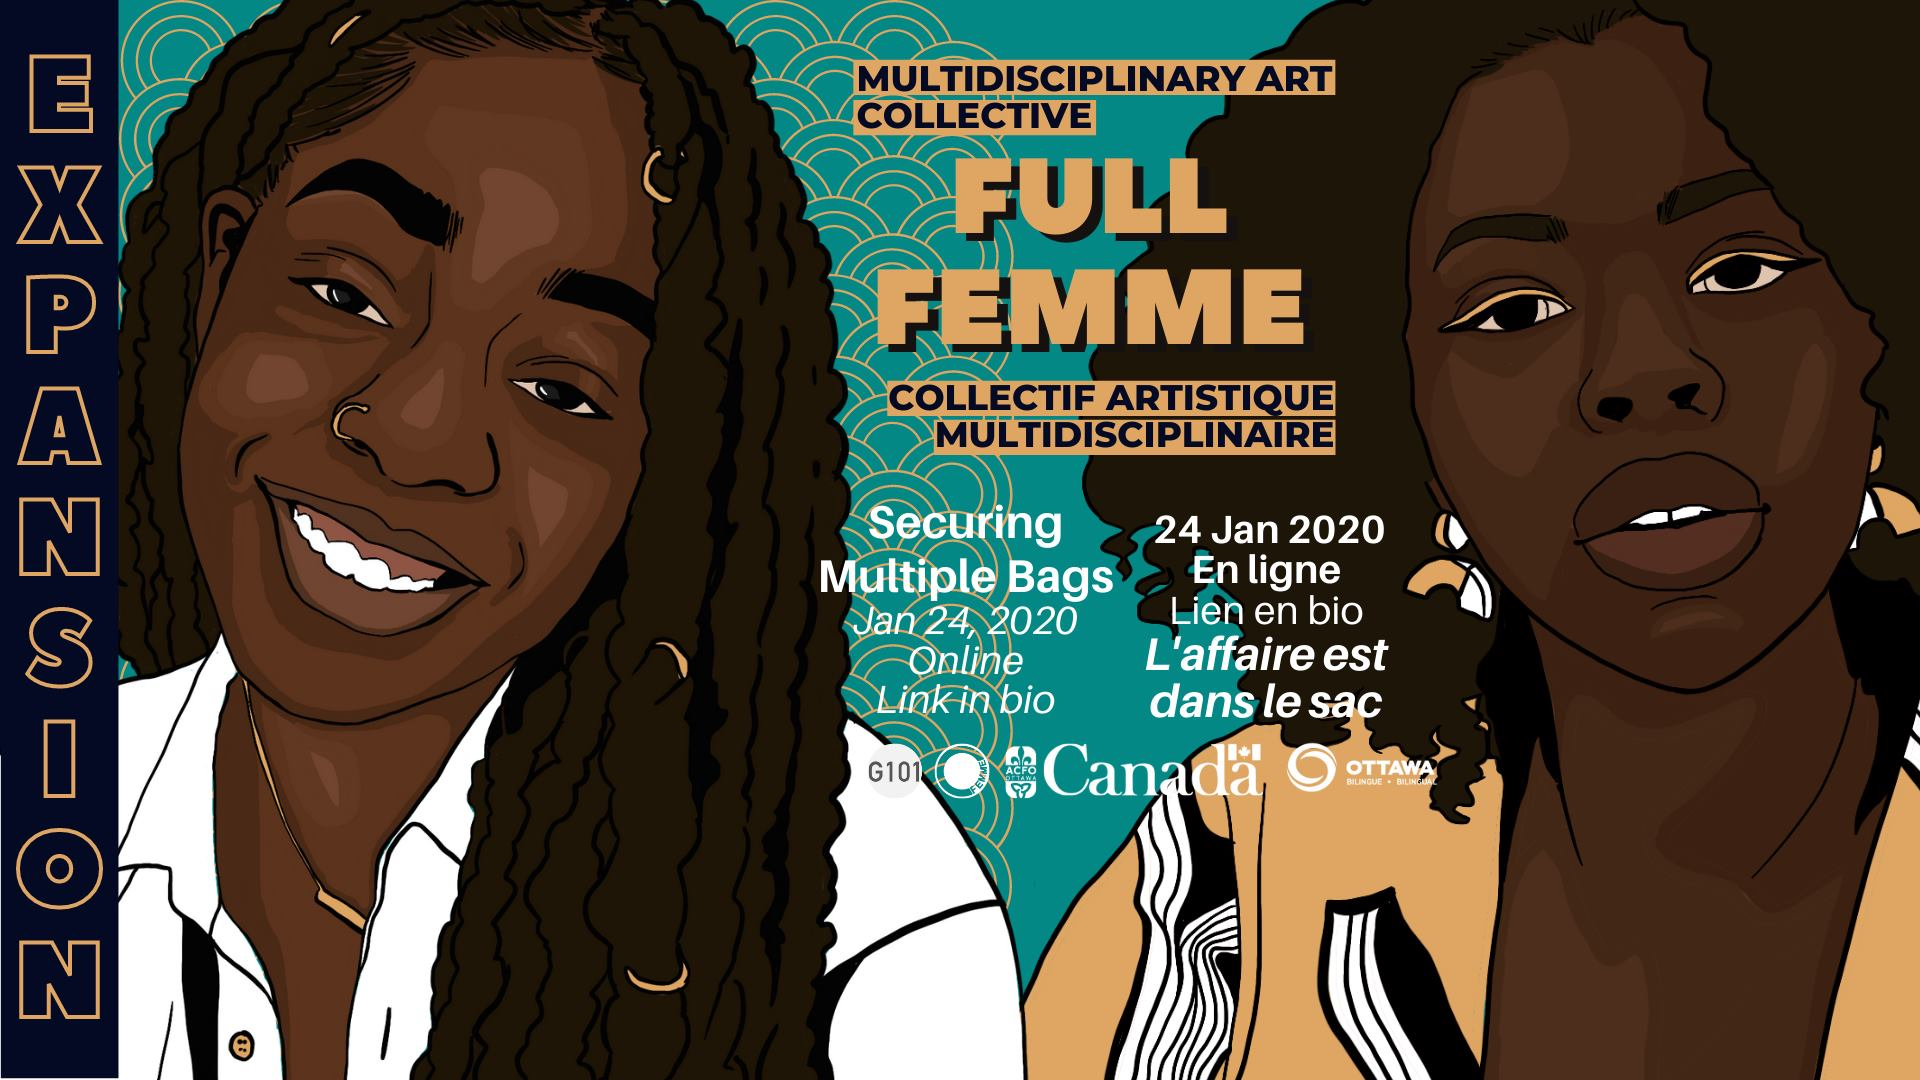 Expansion presents: Securing Multiple Bags workshop by Full Femme. Event graphic featuring illustrations of the two Black facilitators